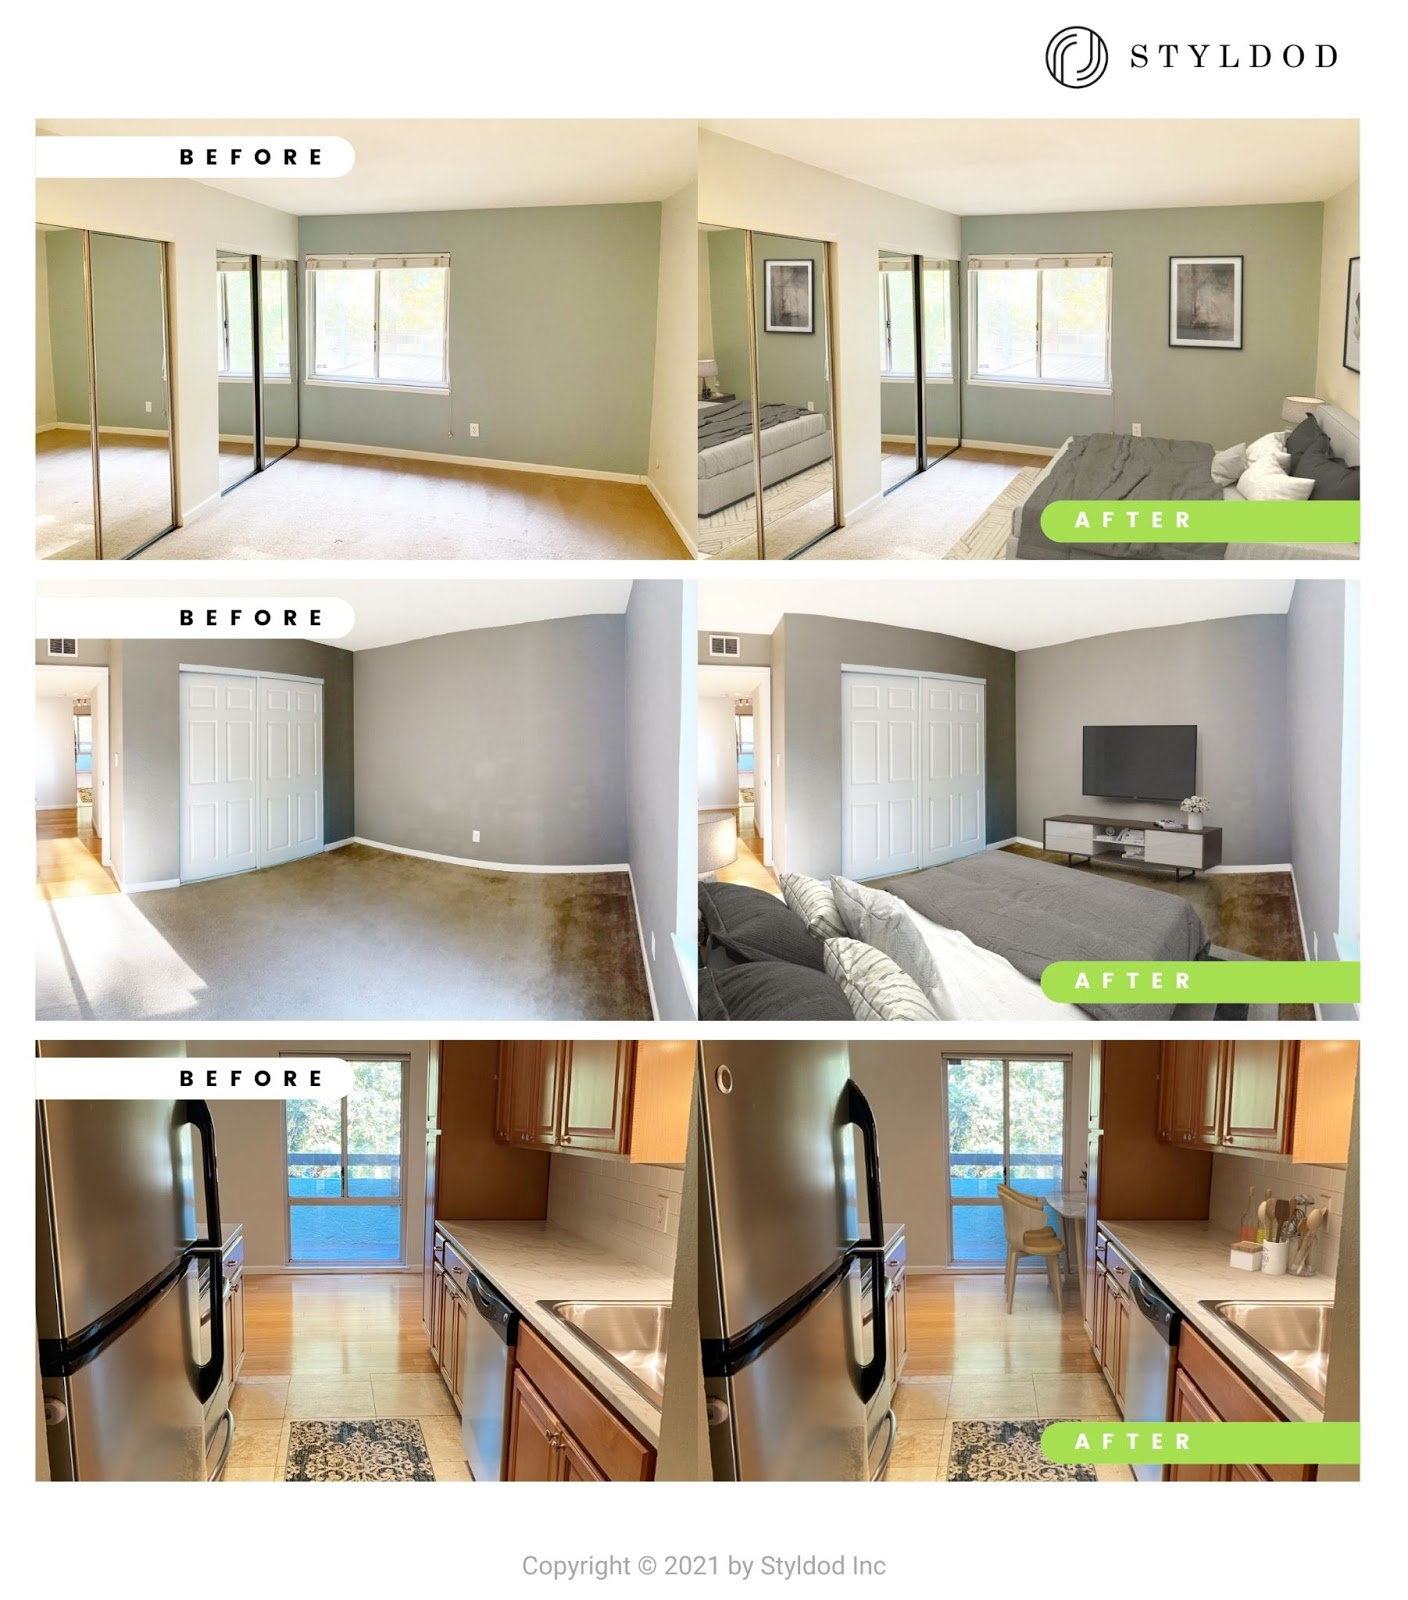 Virtually Staged Bedroom & Kitchen